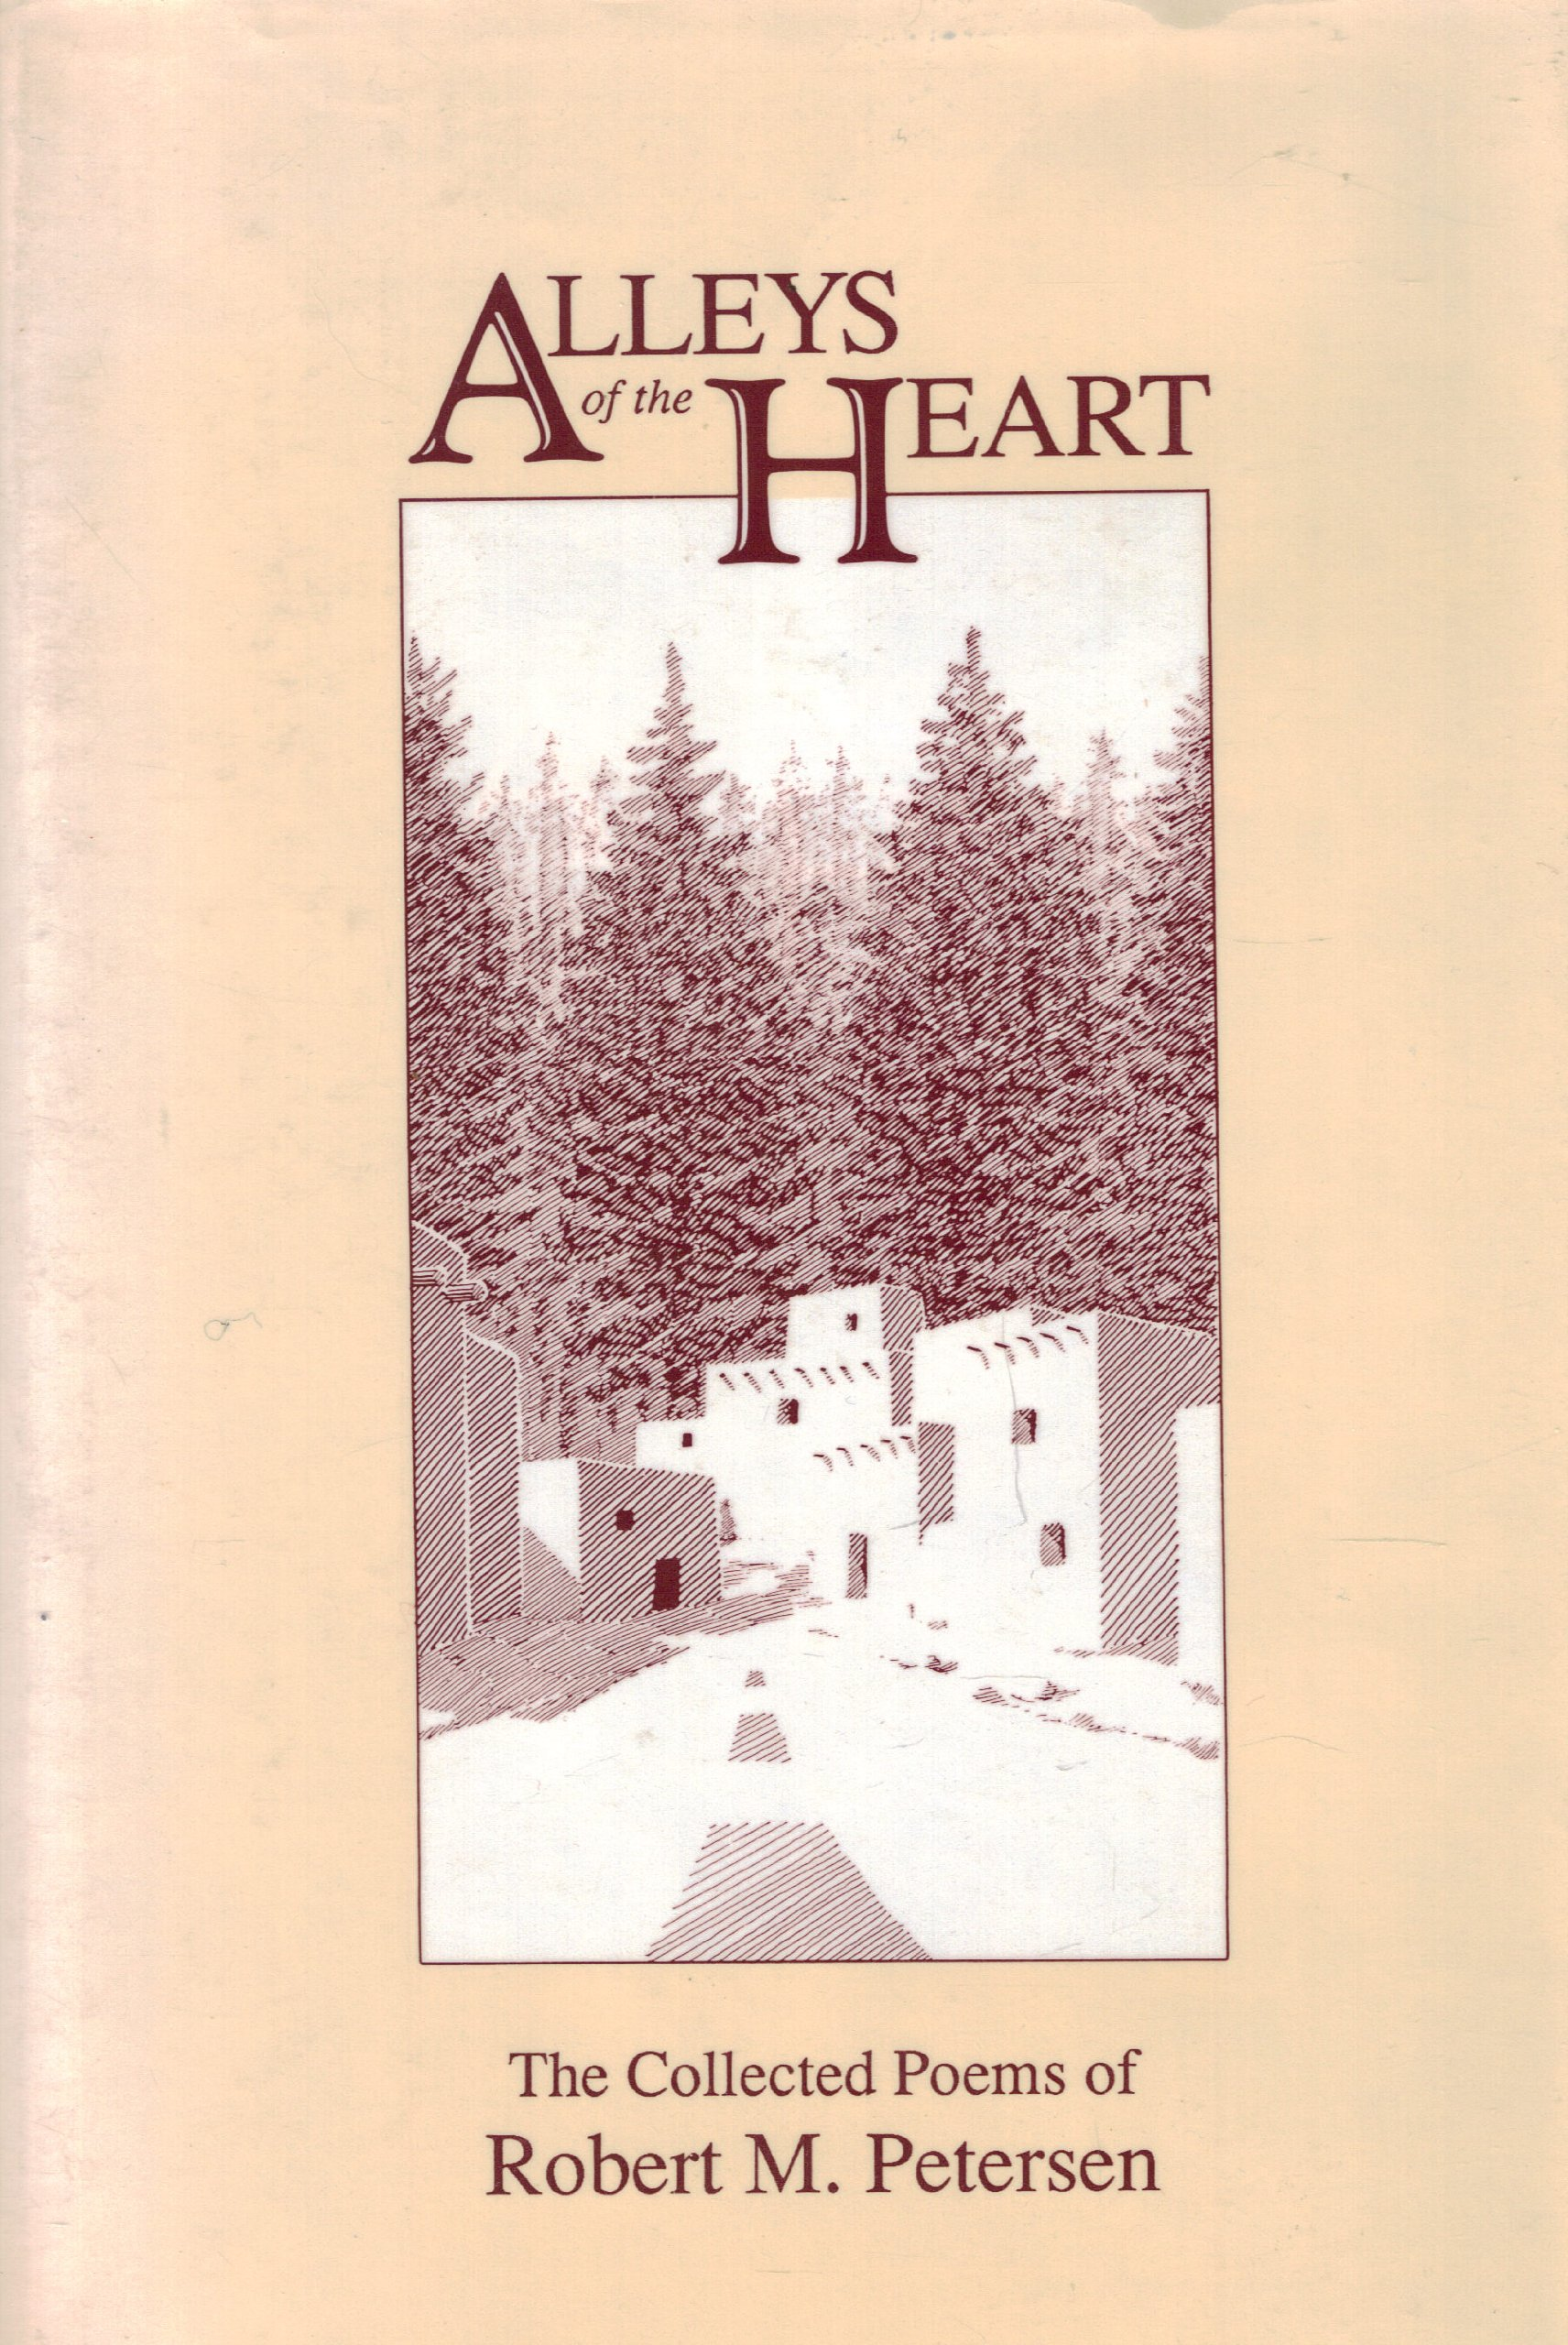 Alleys of the Heart: The Collected Poems of Robert M. Petersen, Petersen, Robert M.